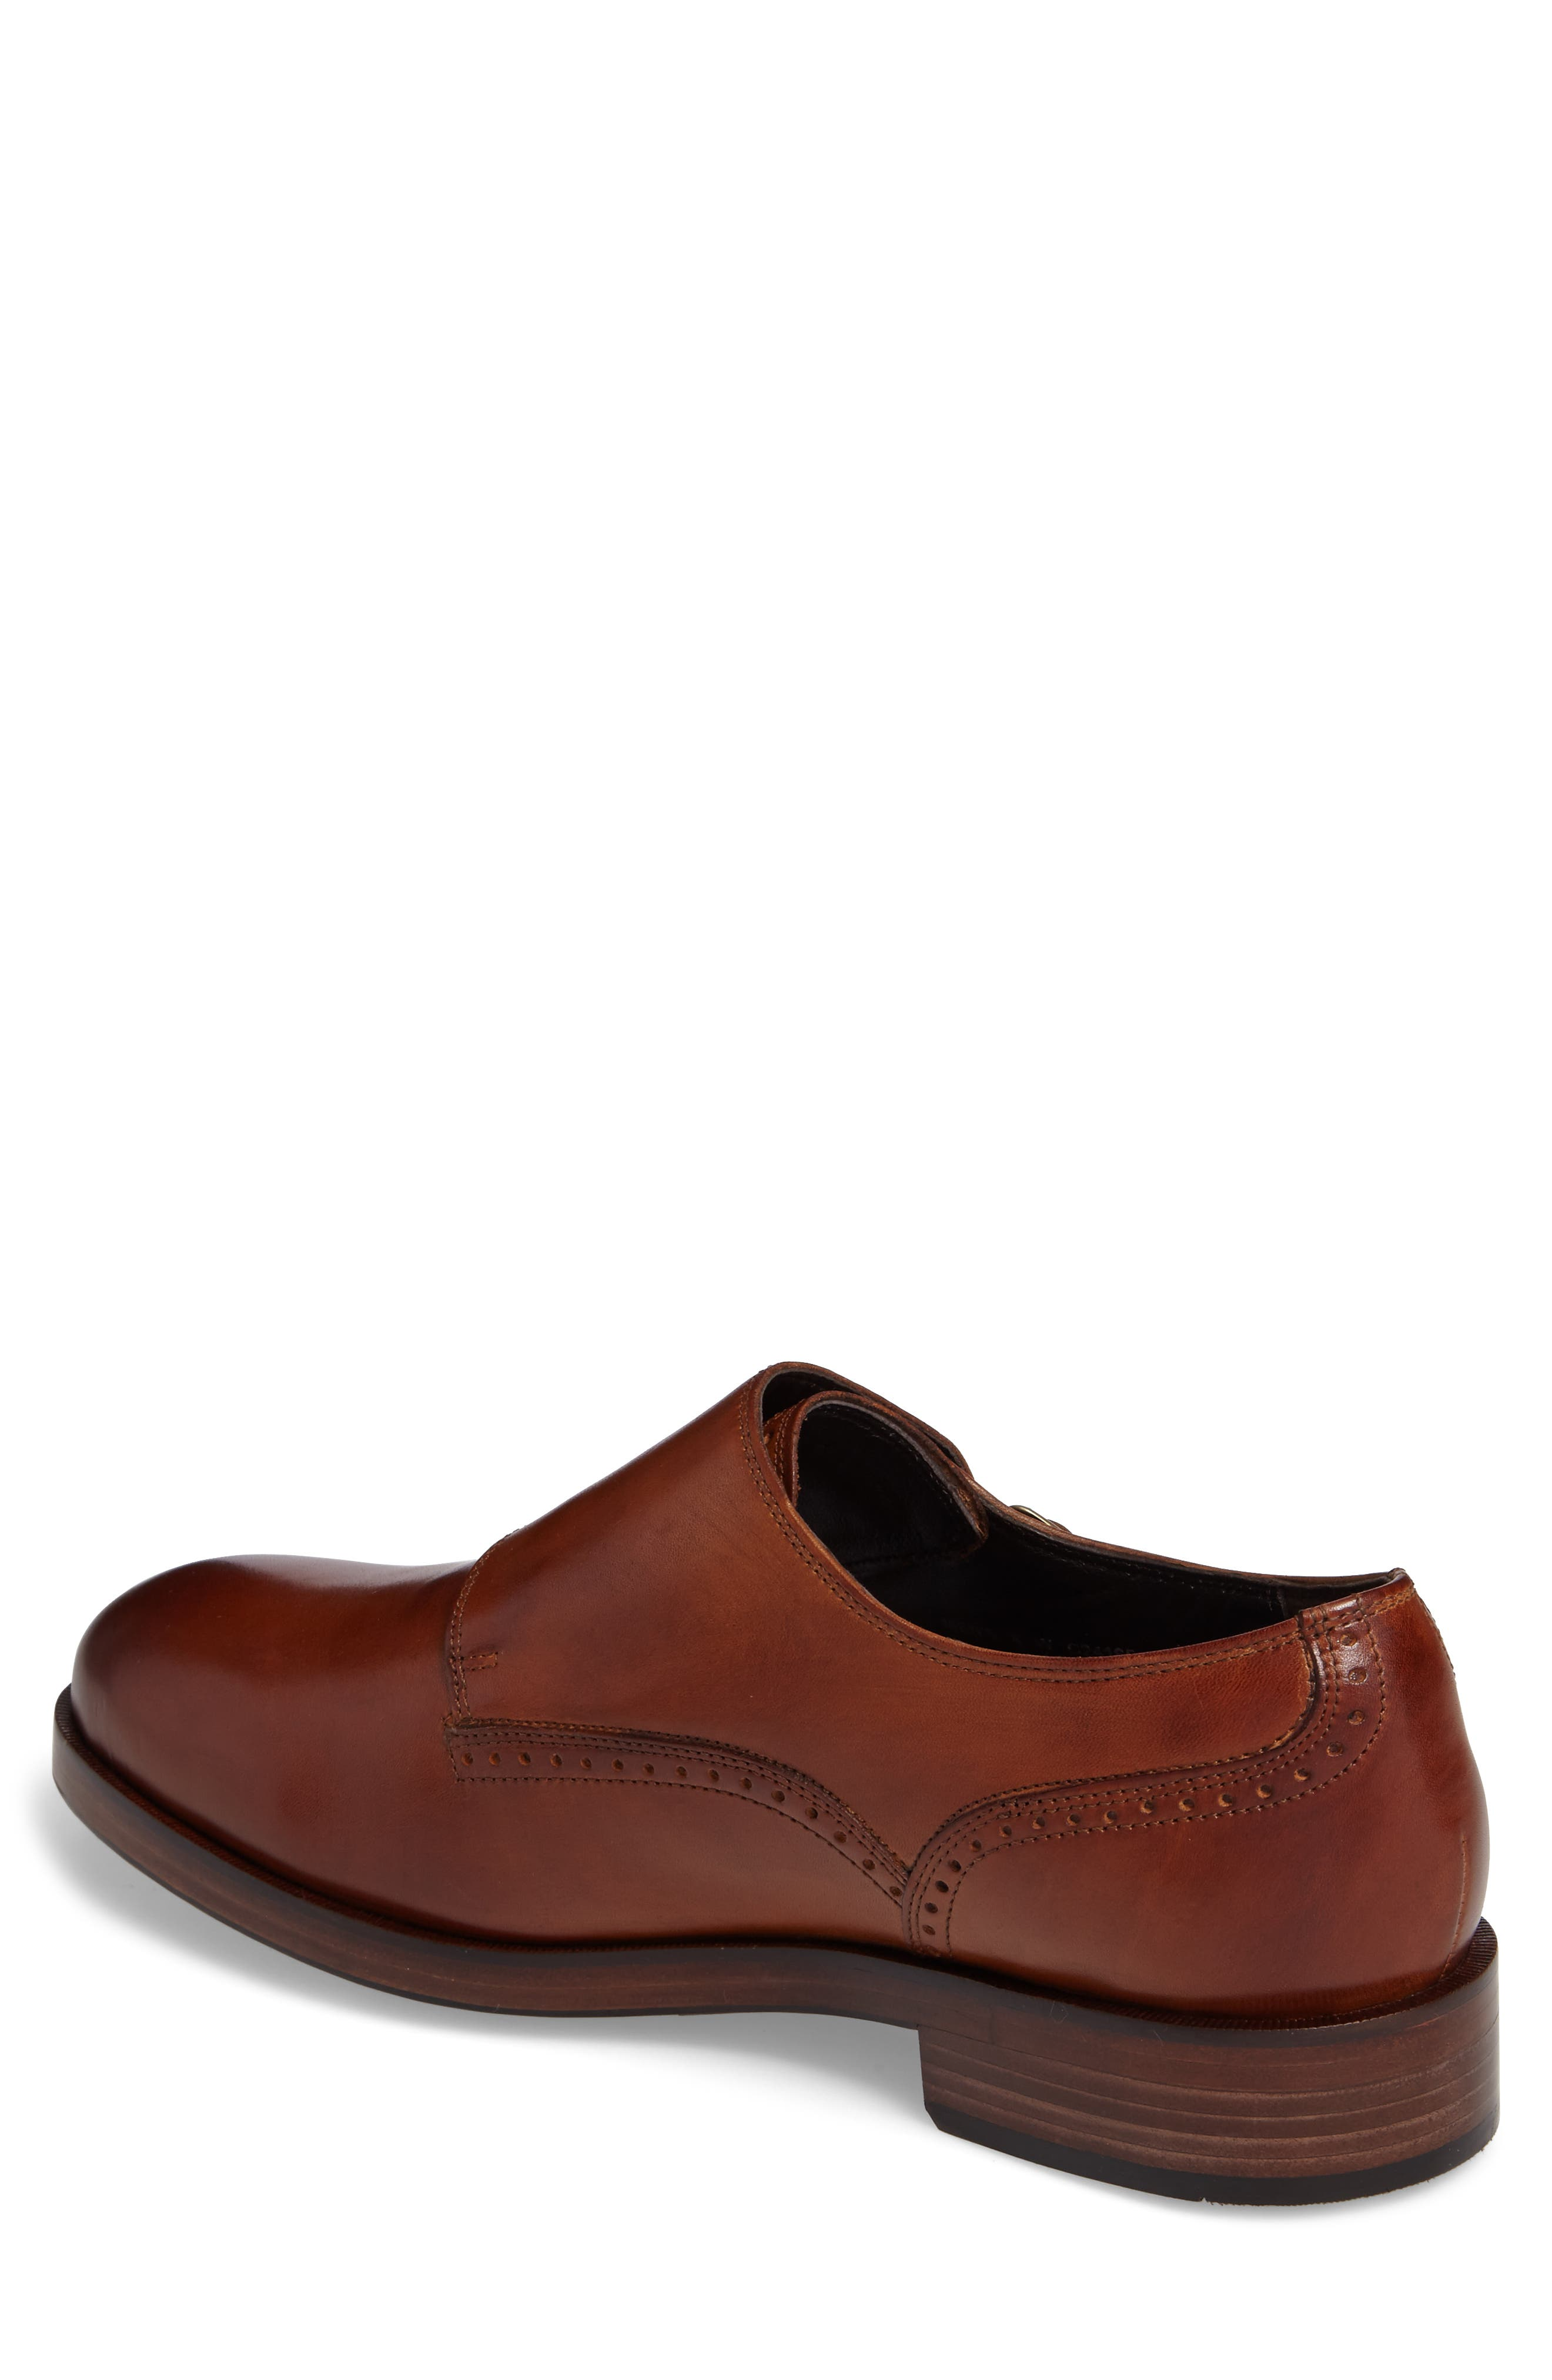 'Harrison' Double Monk Strap Shoe,                             Alternate thumbnail 3, color,                             BRITISH TAN LEATHER